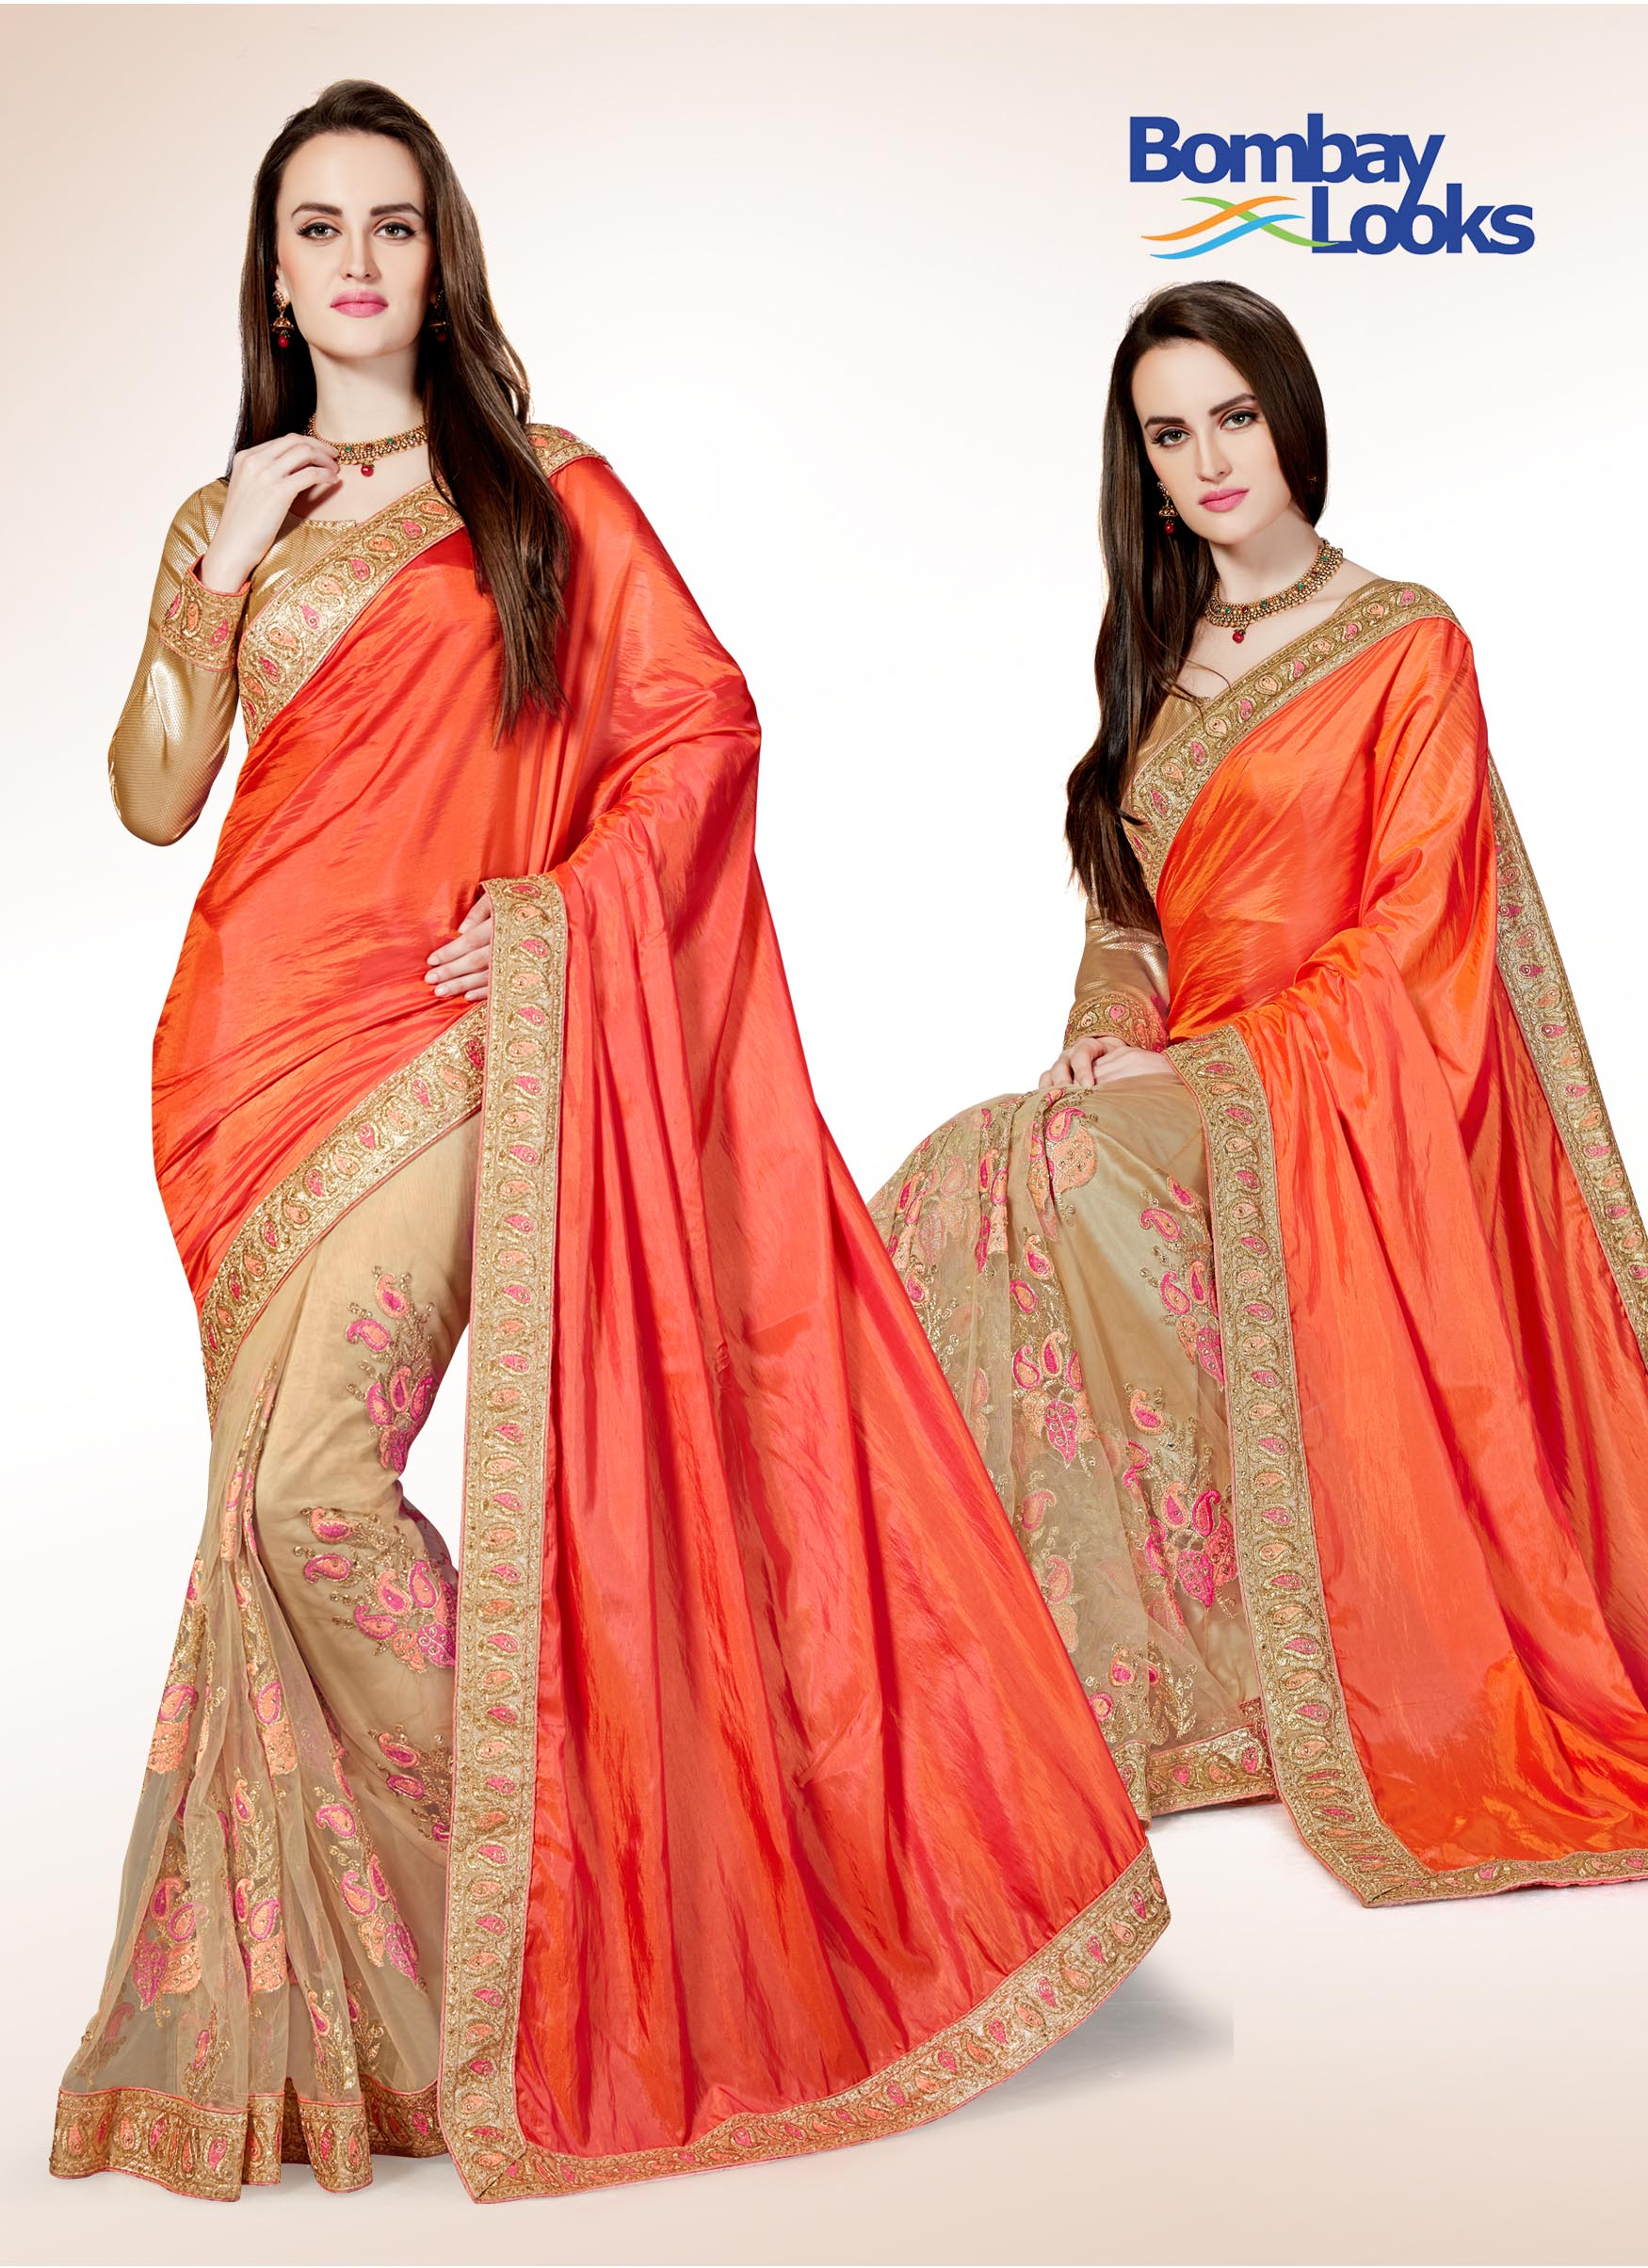 Dual tone half and half silk saree in Pinkish orange and soft net gold